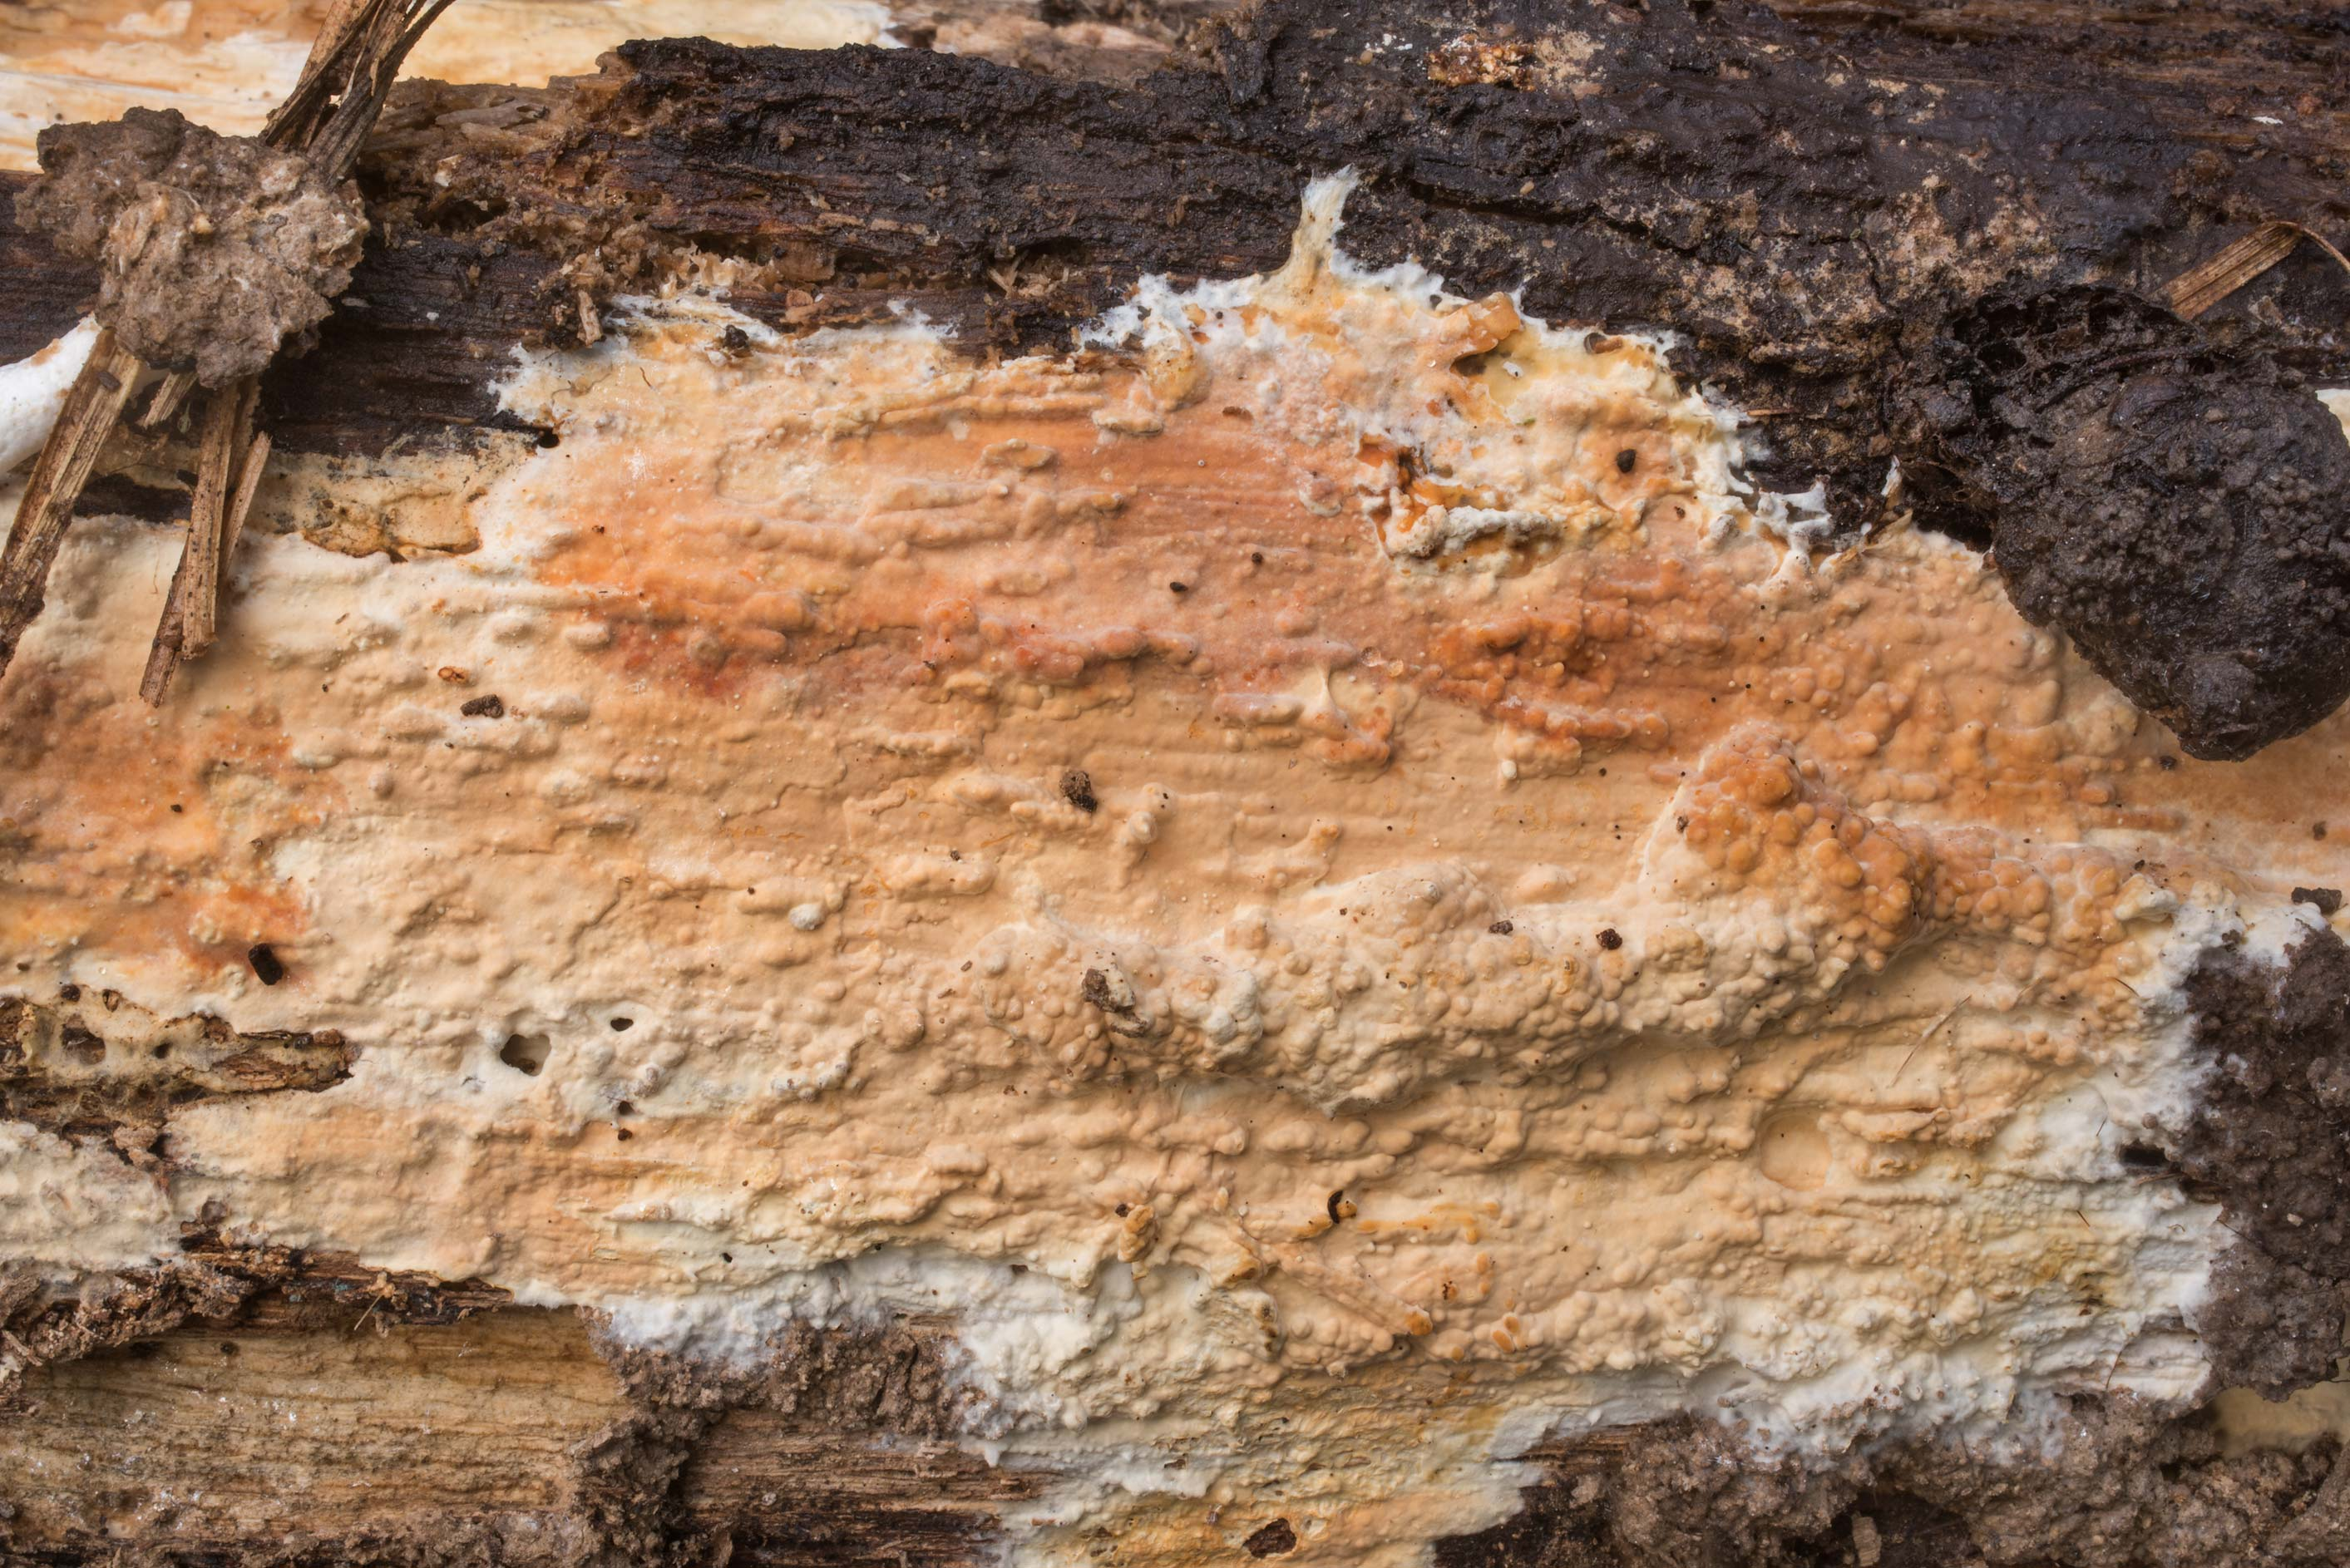 Texture of orange corticioid (crust) fungus on a...Creek Park. College Station, Texas